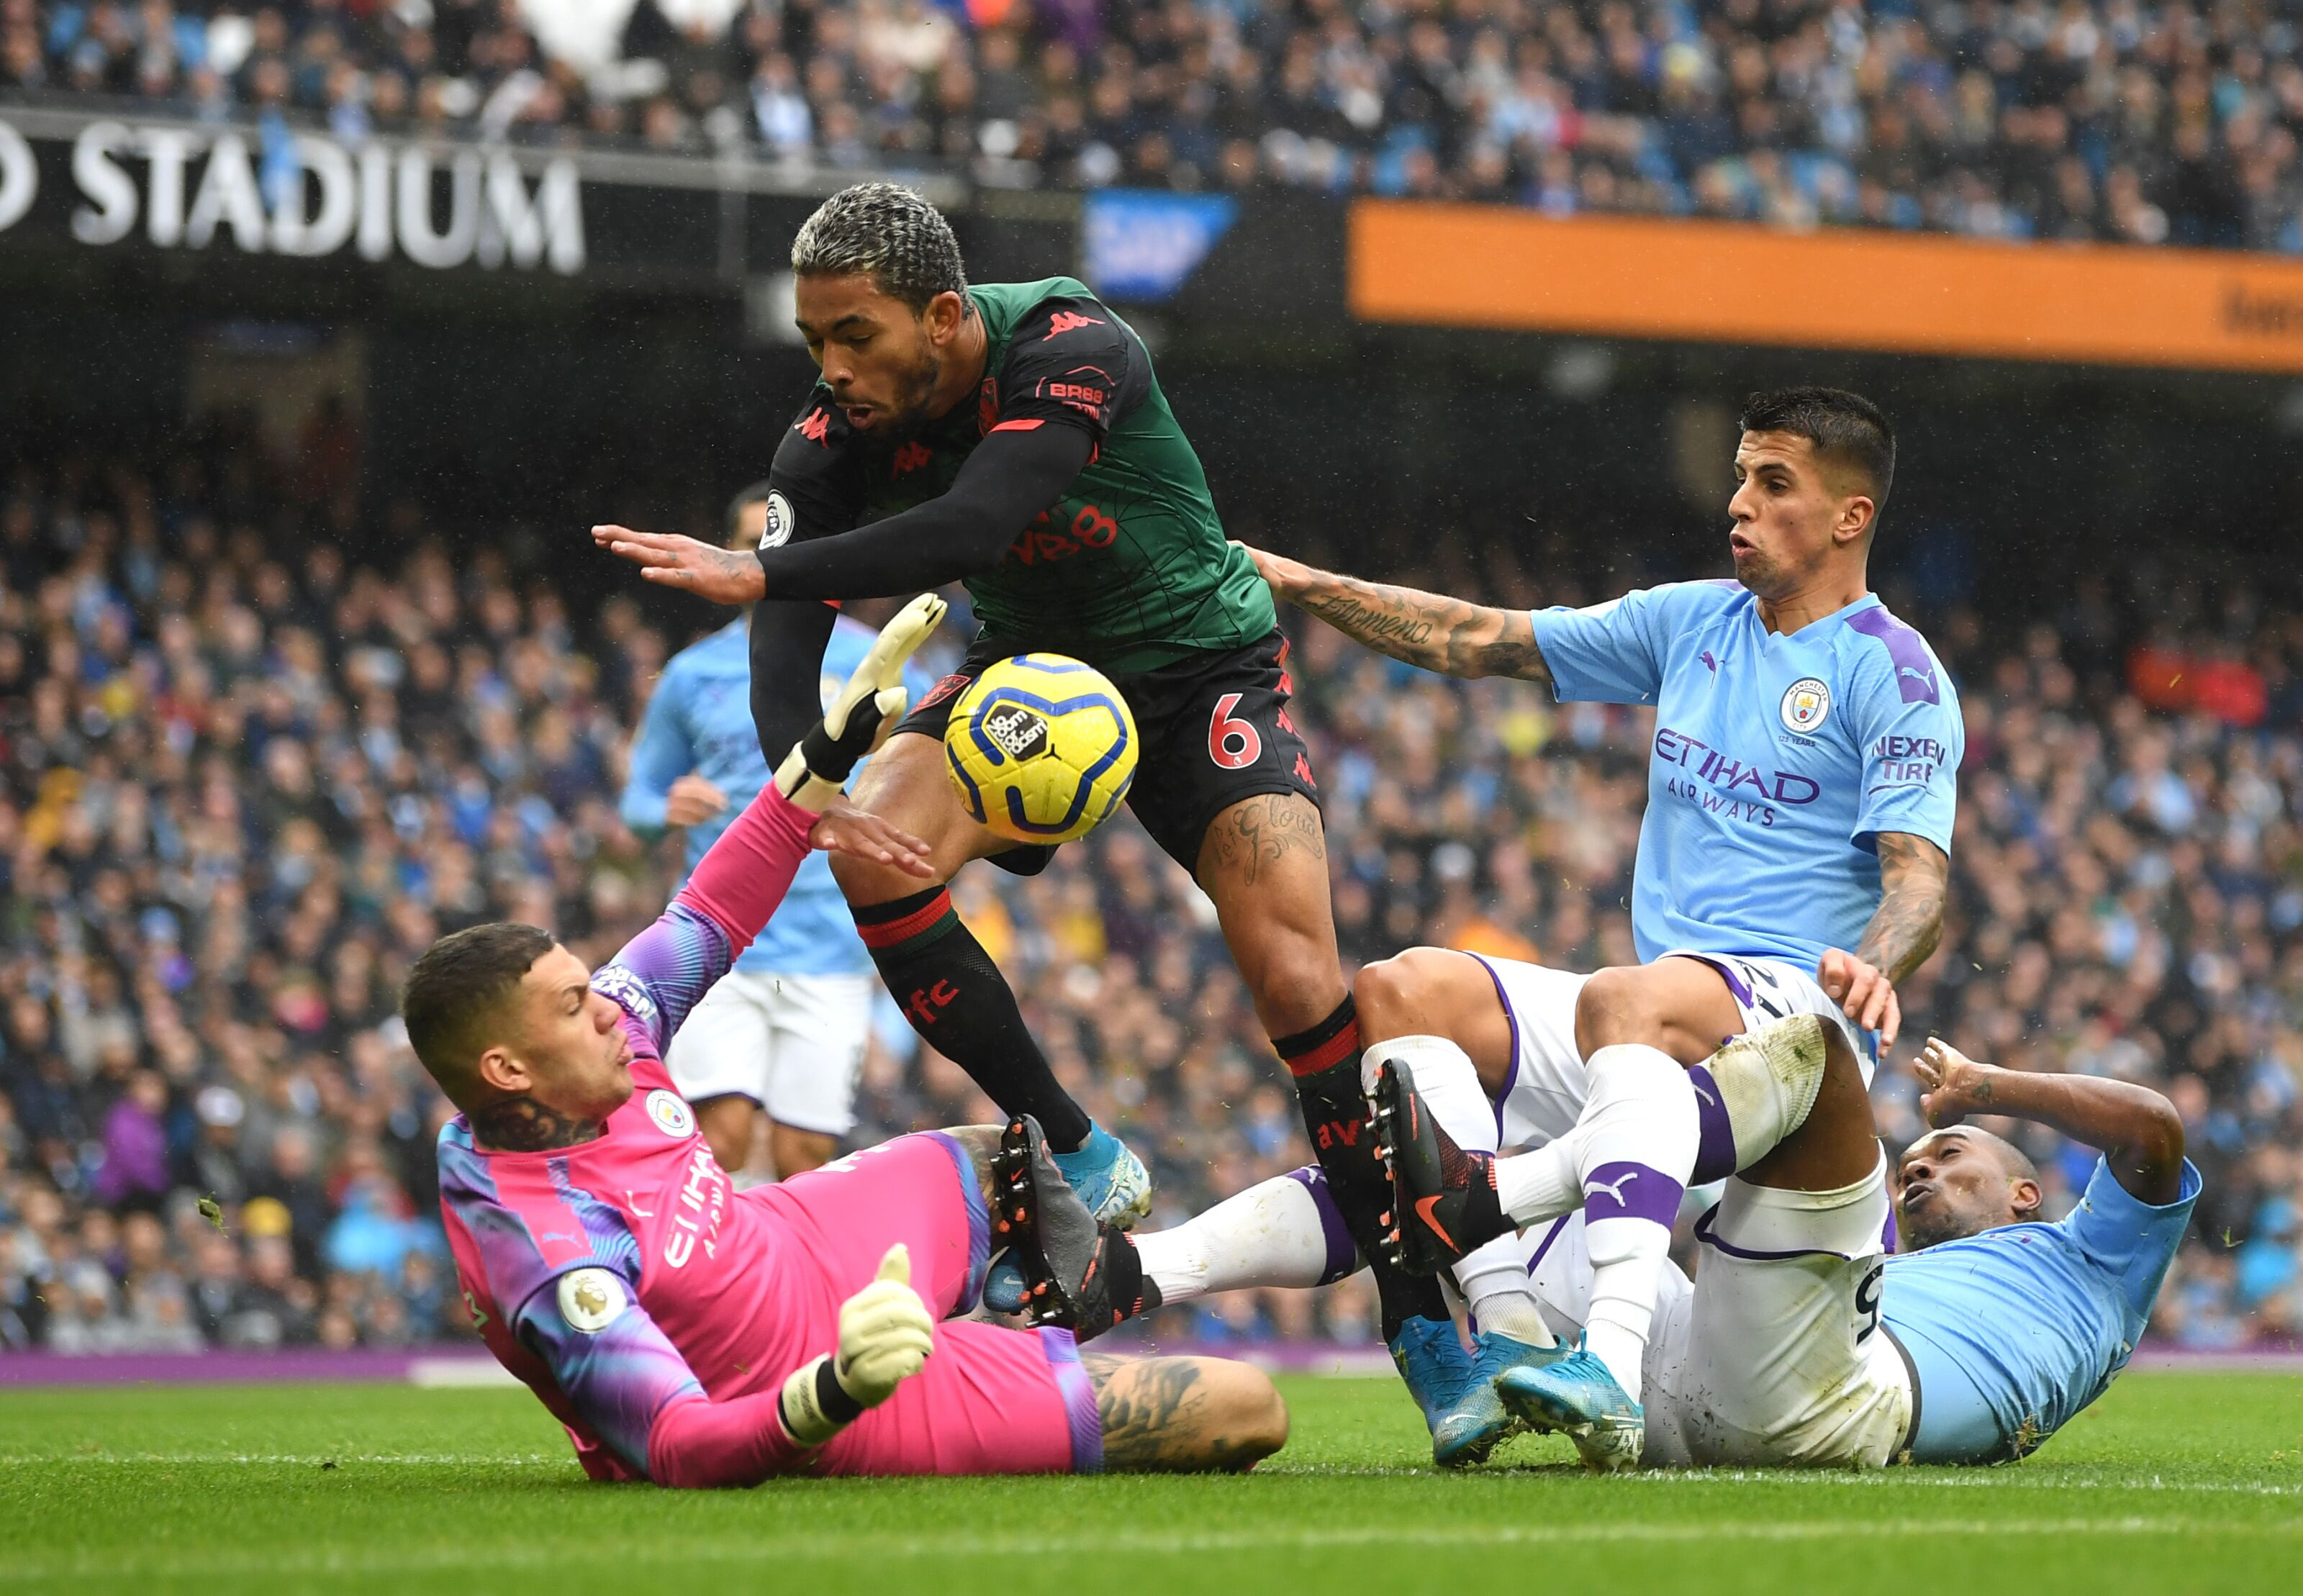 Ederson: The Best Goalkeeper In The World